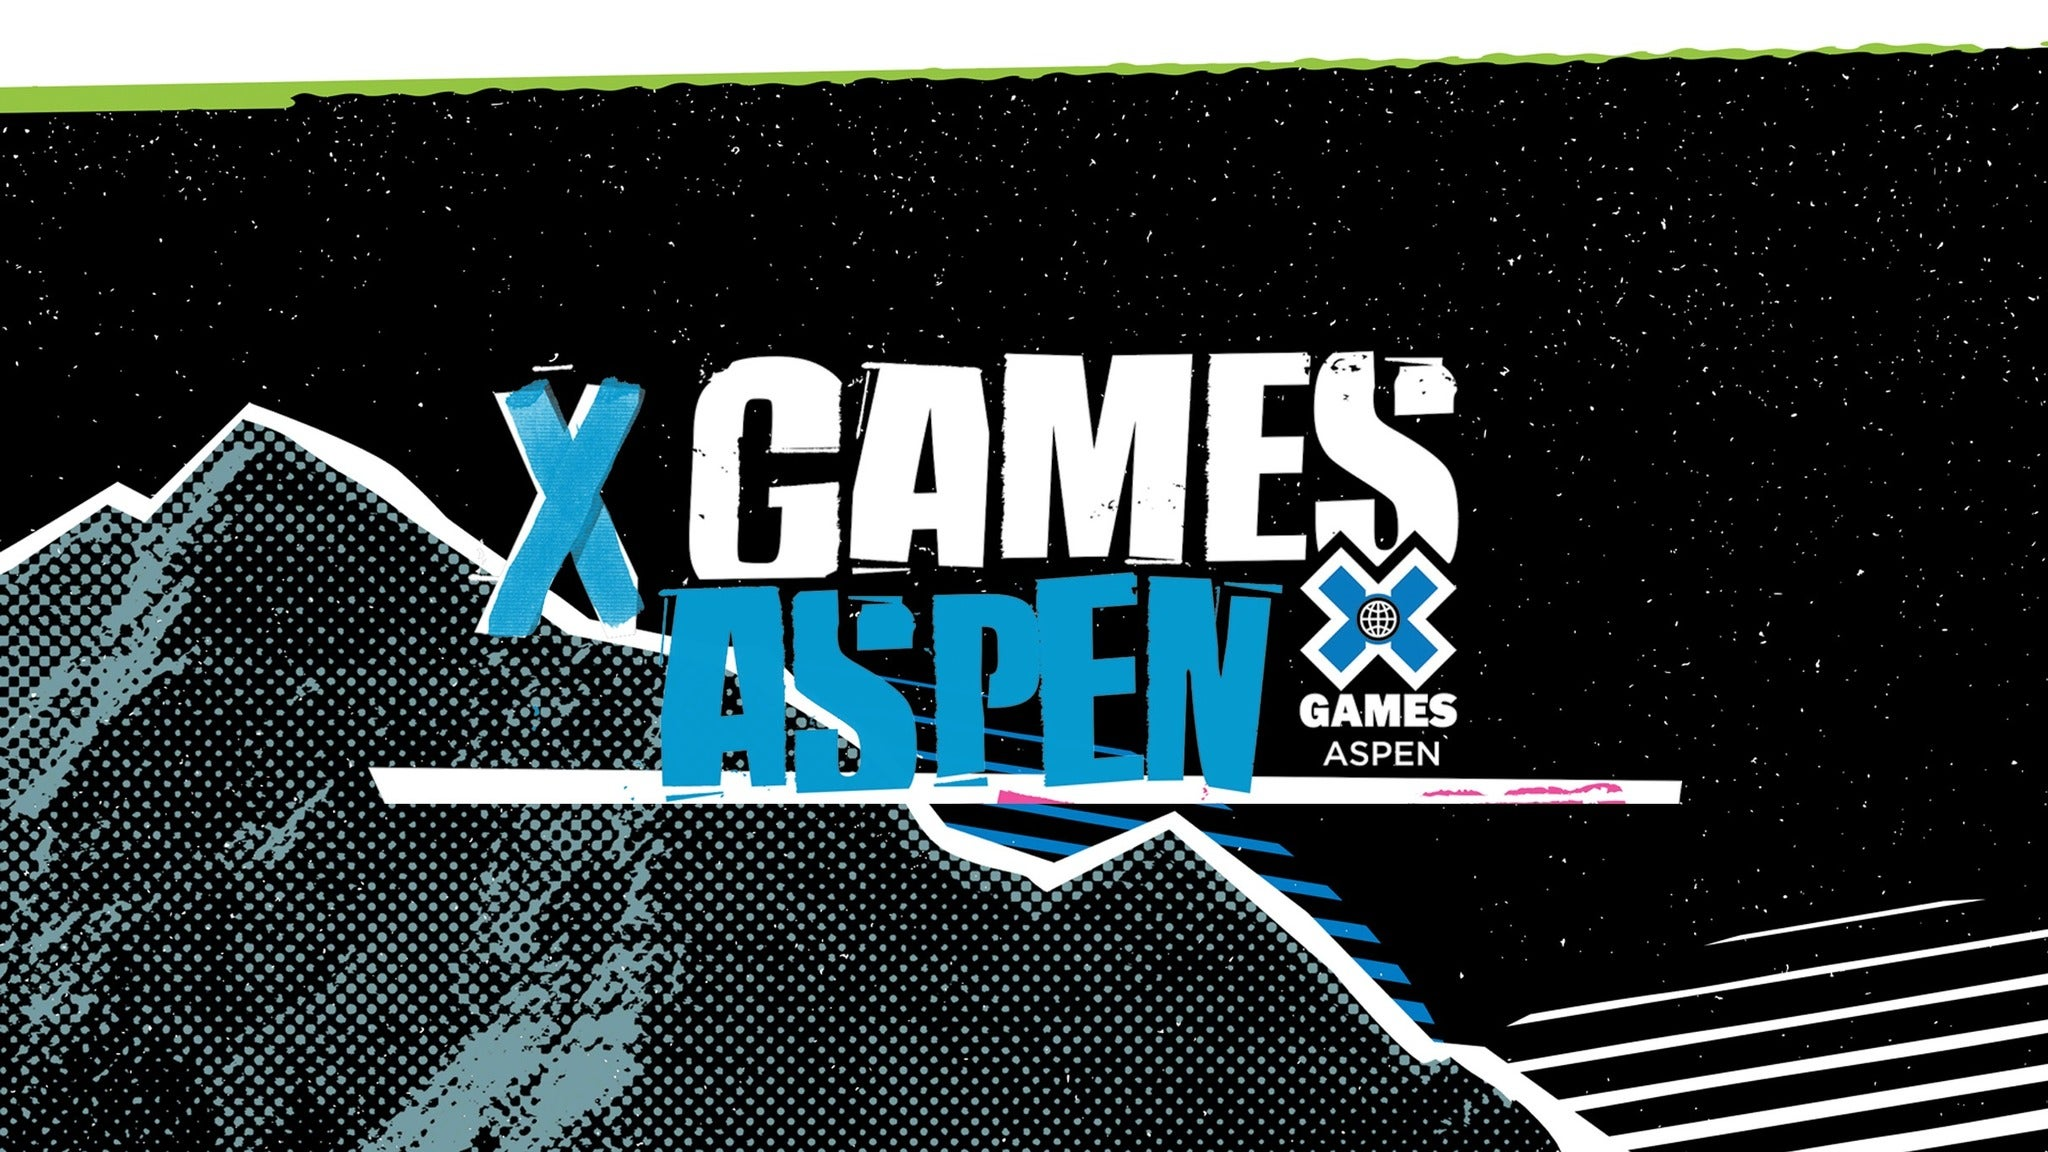 X Games Aspen 2019 at Base of Buttermilk Mountain